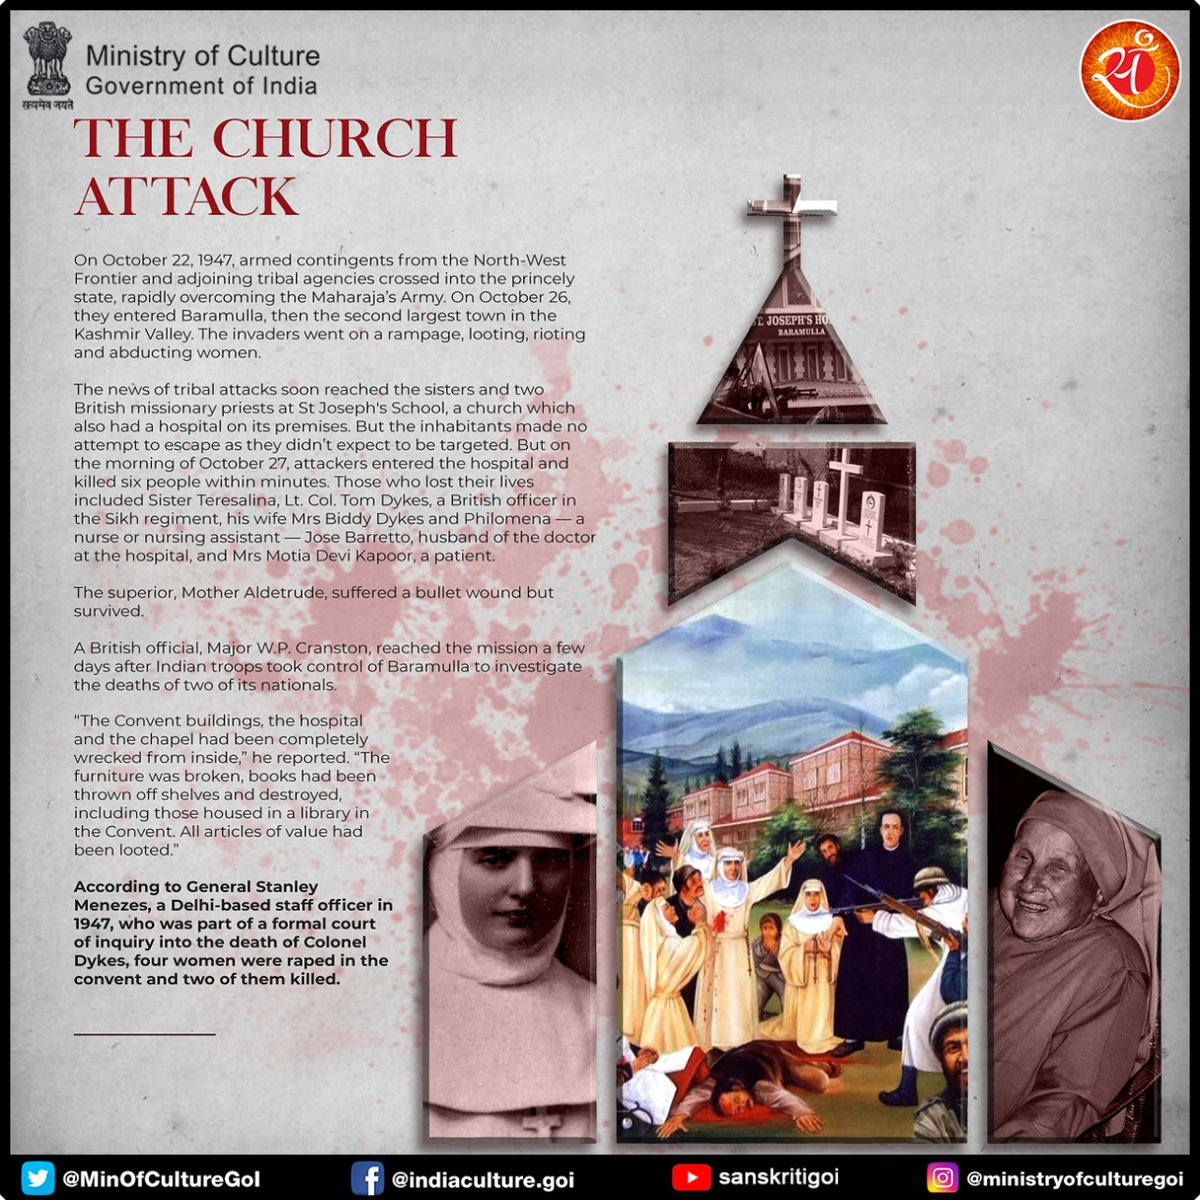 Pakistan backed invaders of Kashmir in Oct 1947 committed worst kind of brutalities. St. Joseph's  Church, which also had a hospital in its premise, was attacked and completely wrecked and almost everyone was killed. #22OCT1947 https://t.co/eZ1zL39Shn